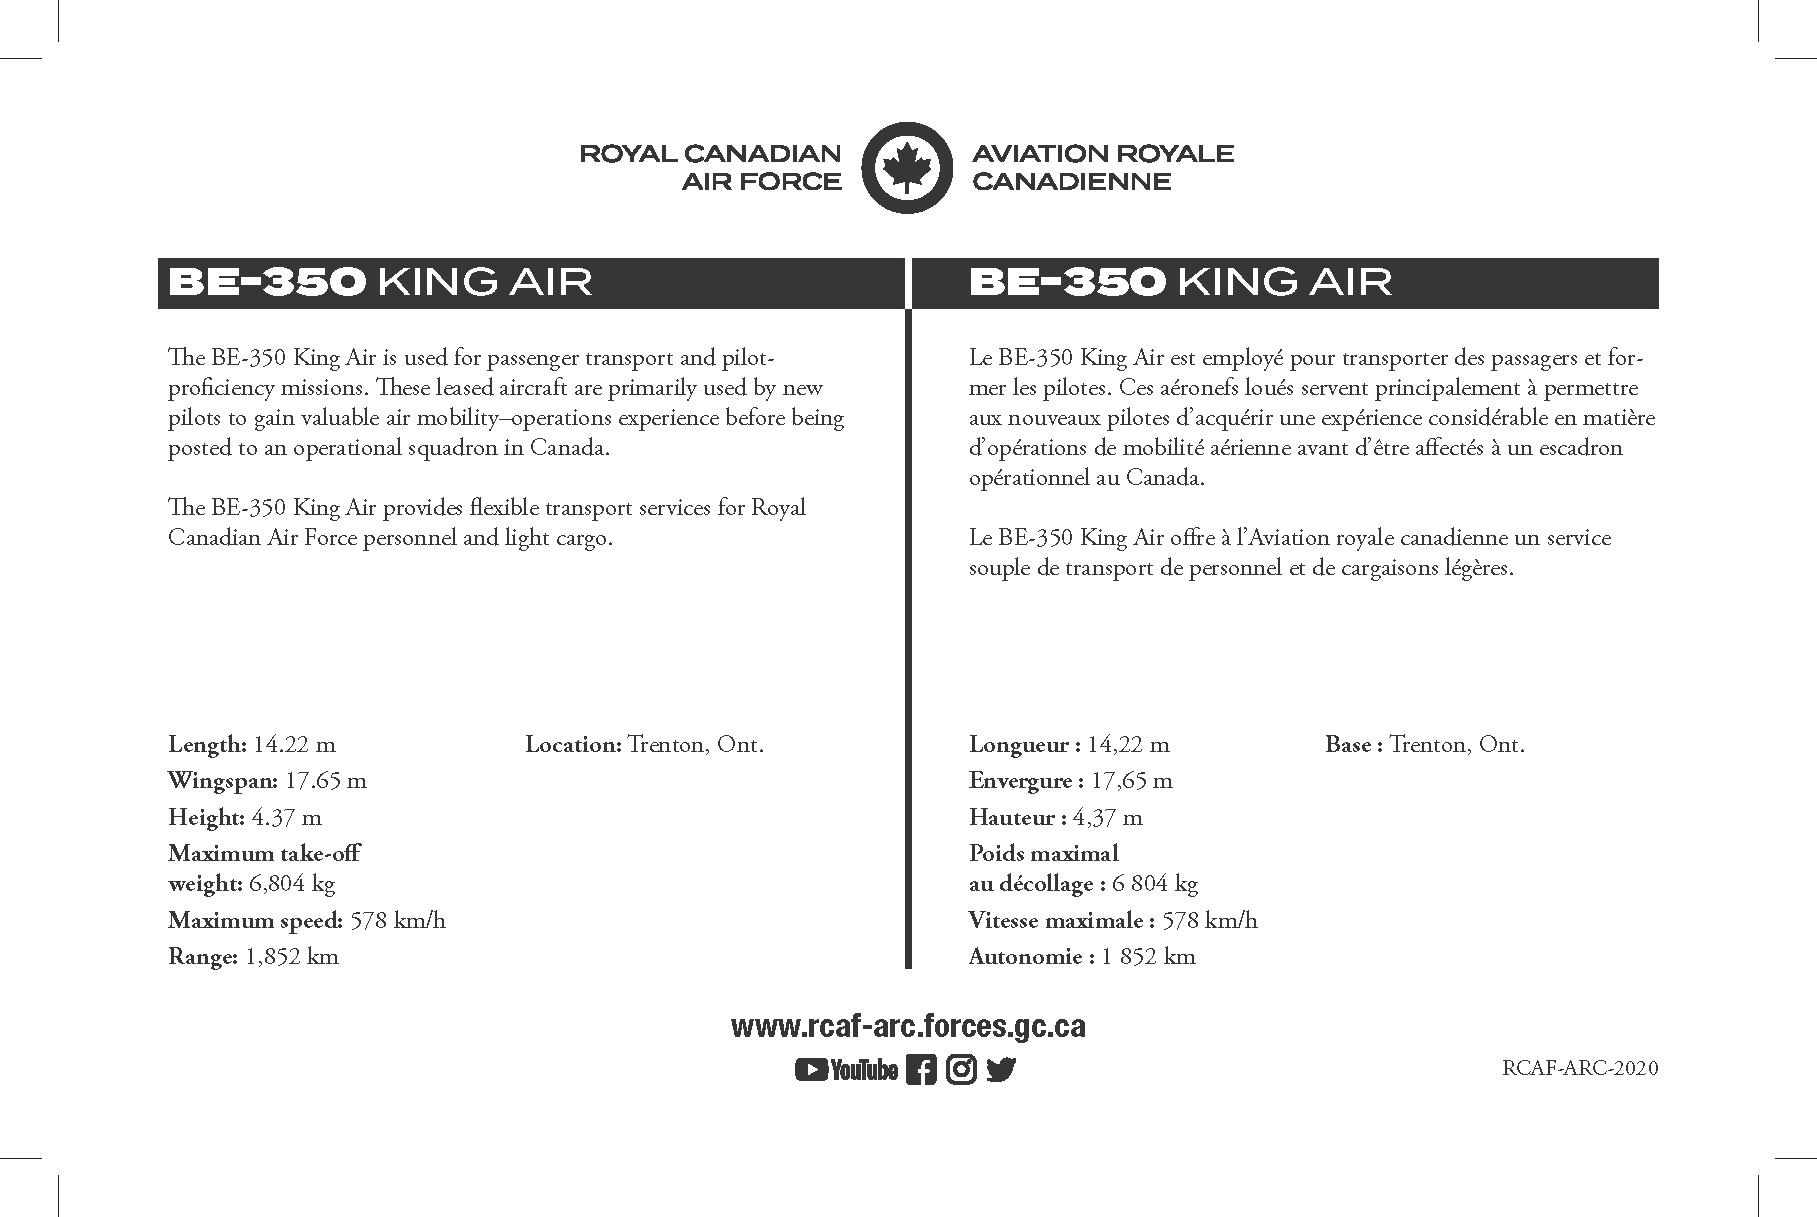 BE-350 King Air fact sheet details